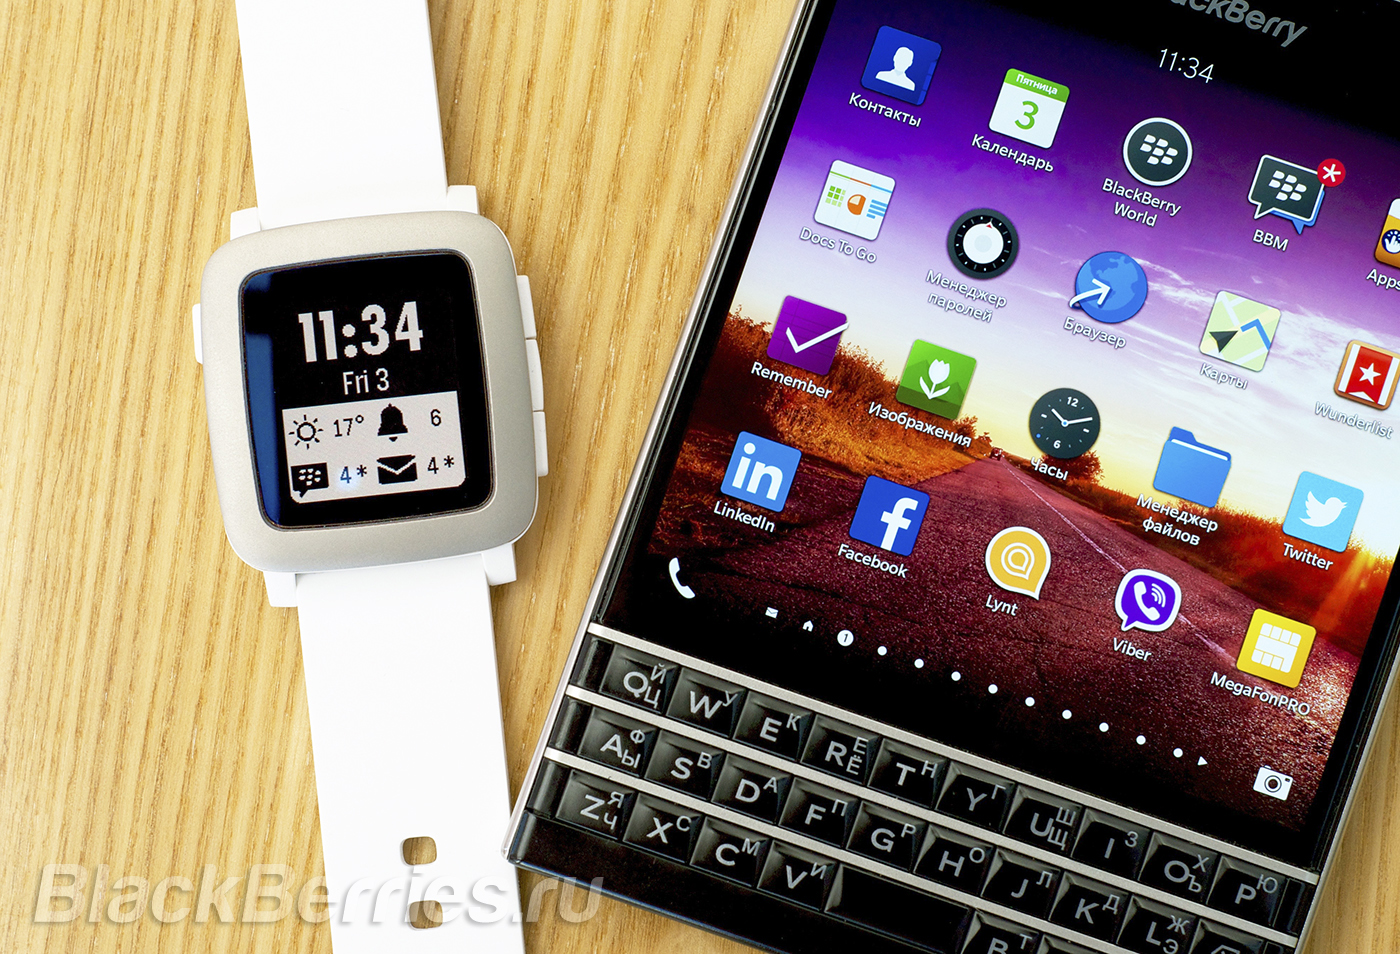 BlackBerry-Passport-Pebble-Time-54